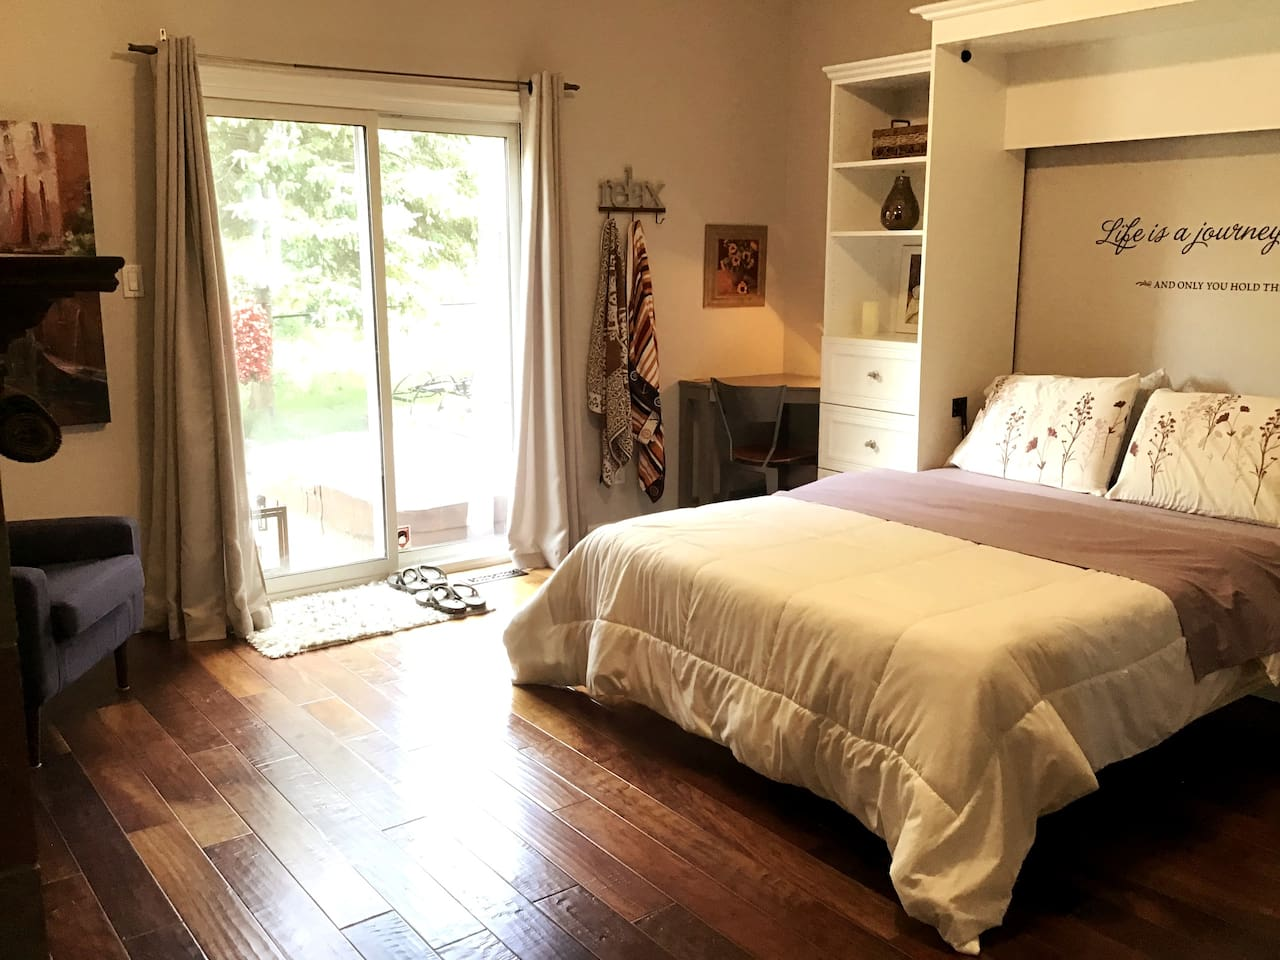 15'x15' Bedroom on main floor with en-suite. Ensuite includes double soaker tub and walk in 4x5, 2 person shower. Cozy, insulated walls and floors. New Memory Foam mattress. Double Sided Fireplace and hot tub 2 steps away.